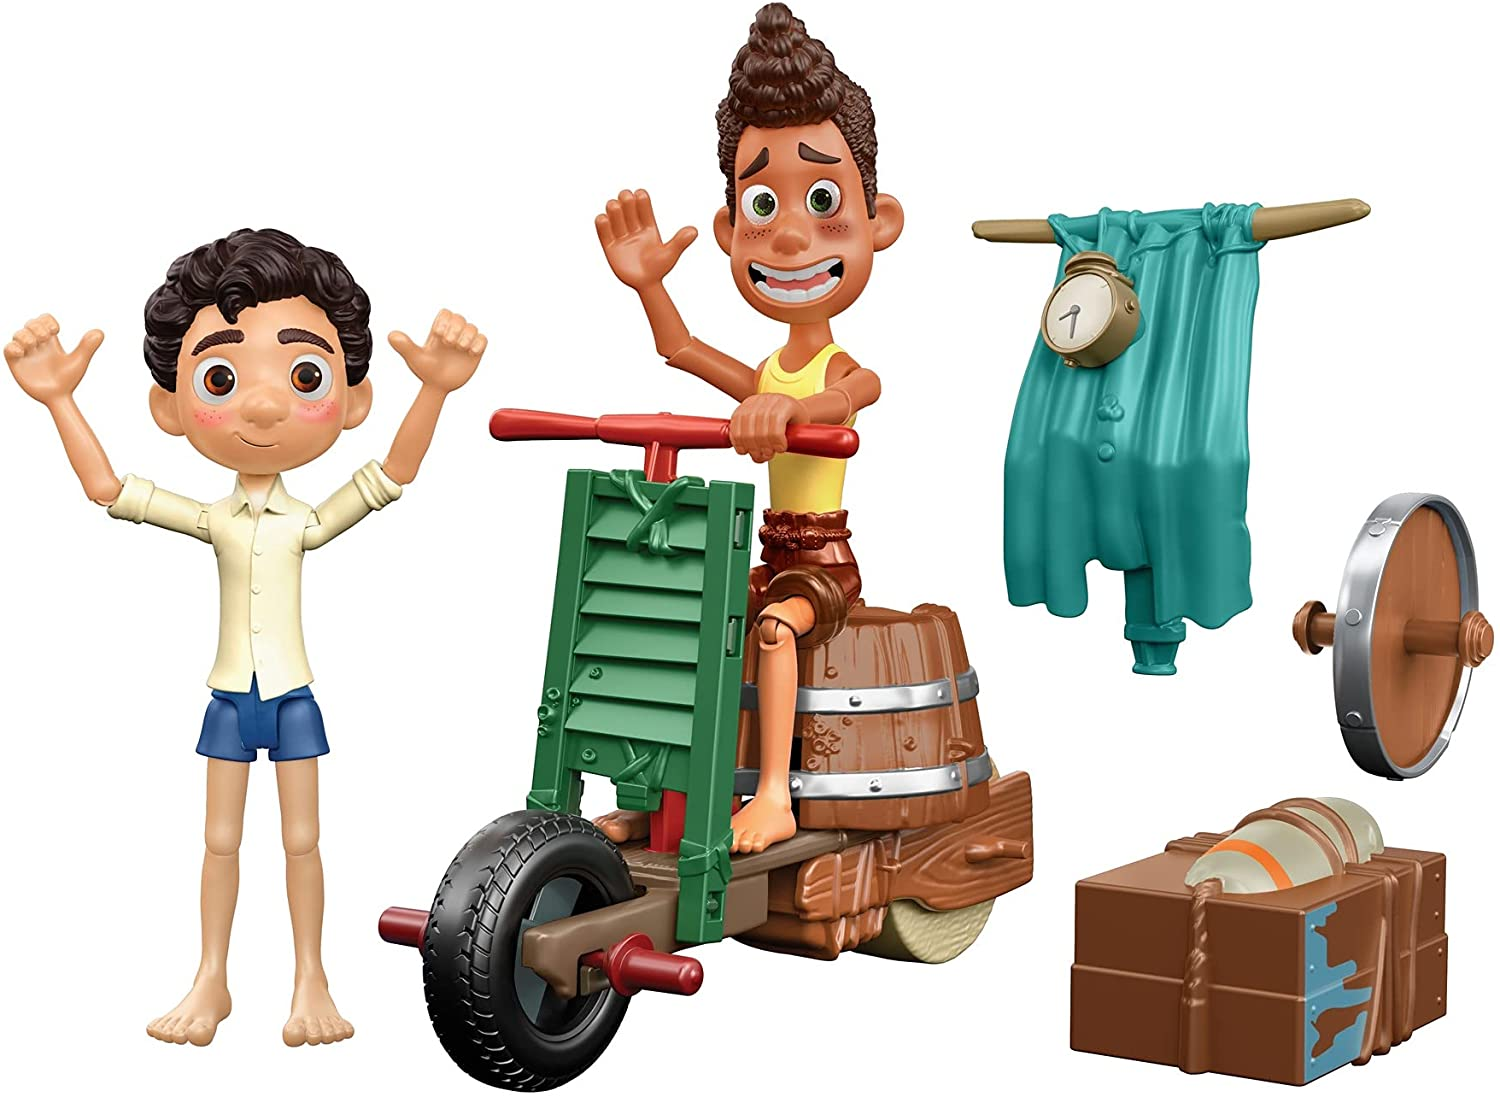 Mattel Disney and Pixar Luca Scooter Build & Crash Pack with Luca Paguro & Alberto Scorfano Posable Action Figures & 6 Swappable Scooter Pieces, Gift for Kids Ages 3 Years & Older